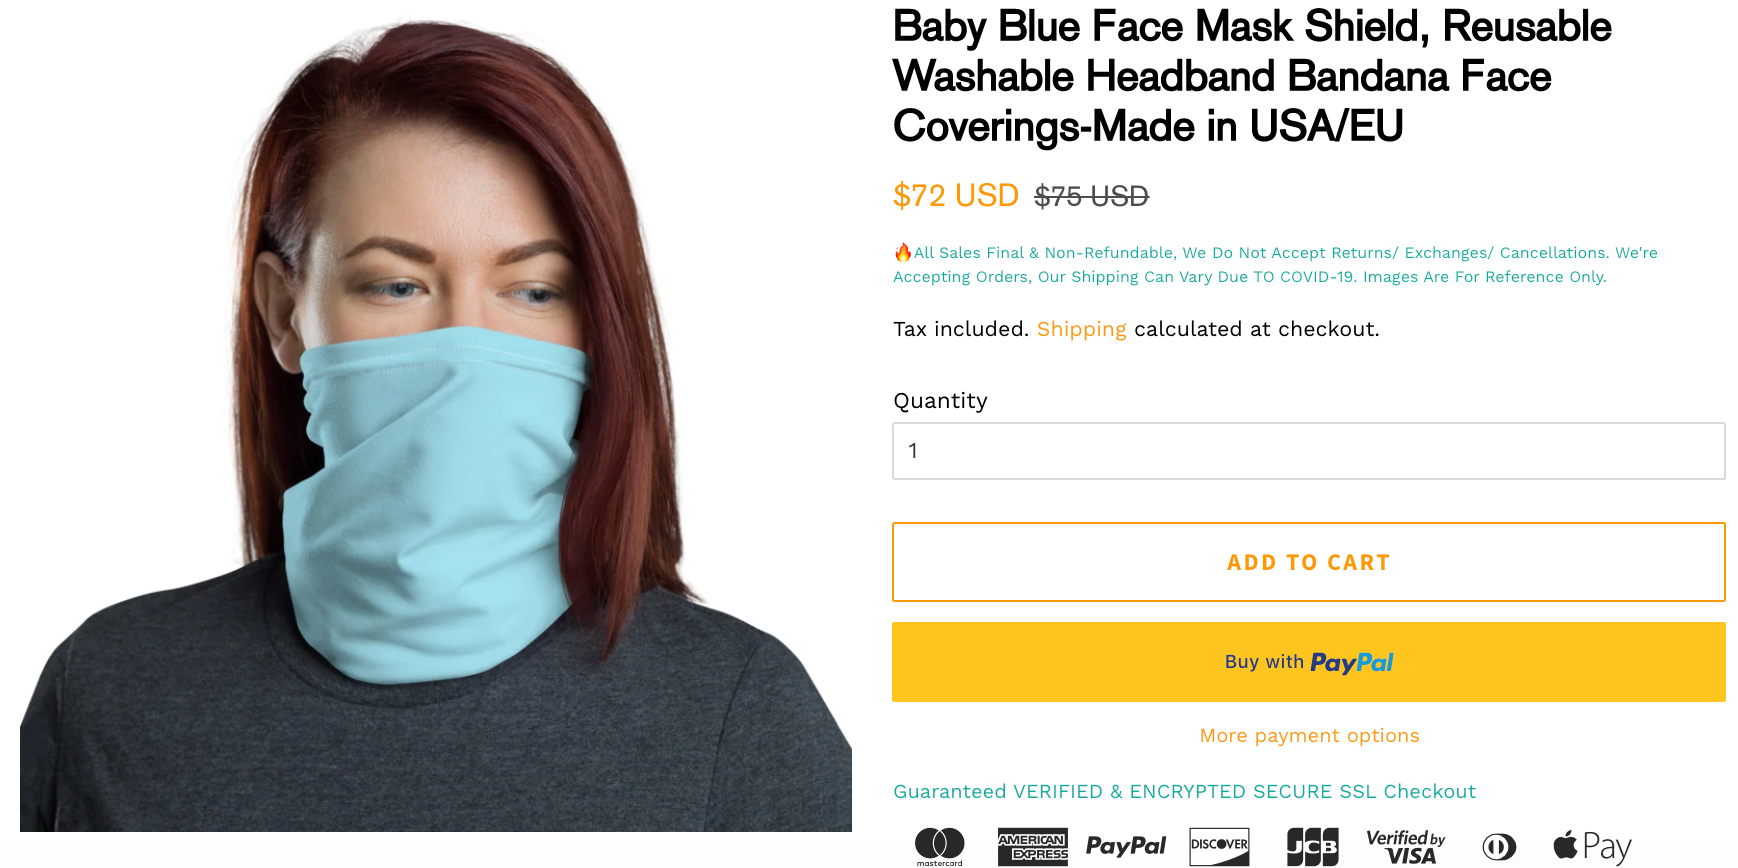 Compare Prices - Face Coverings